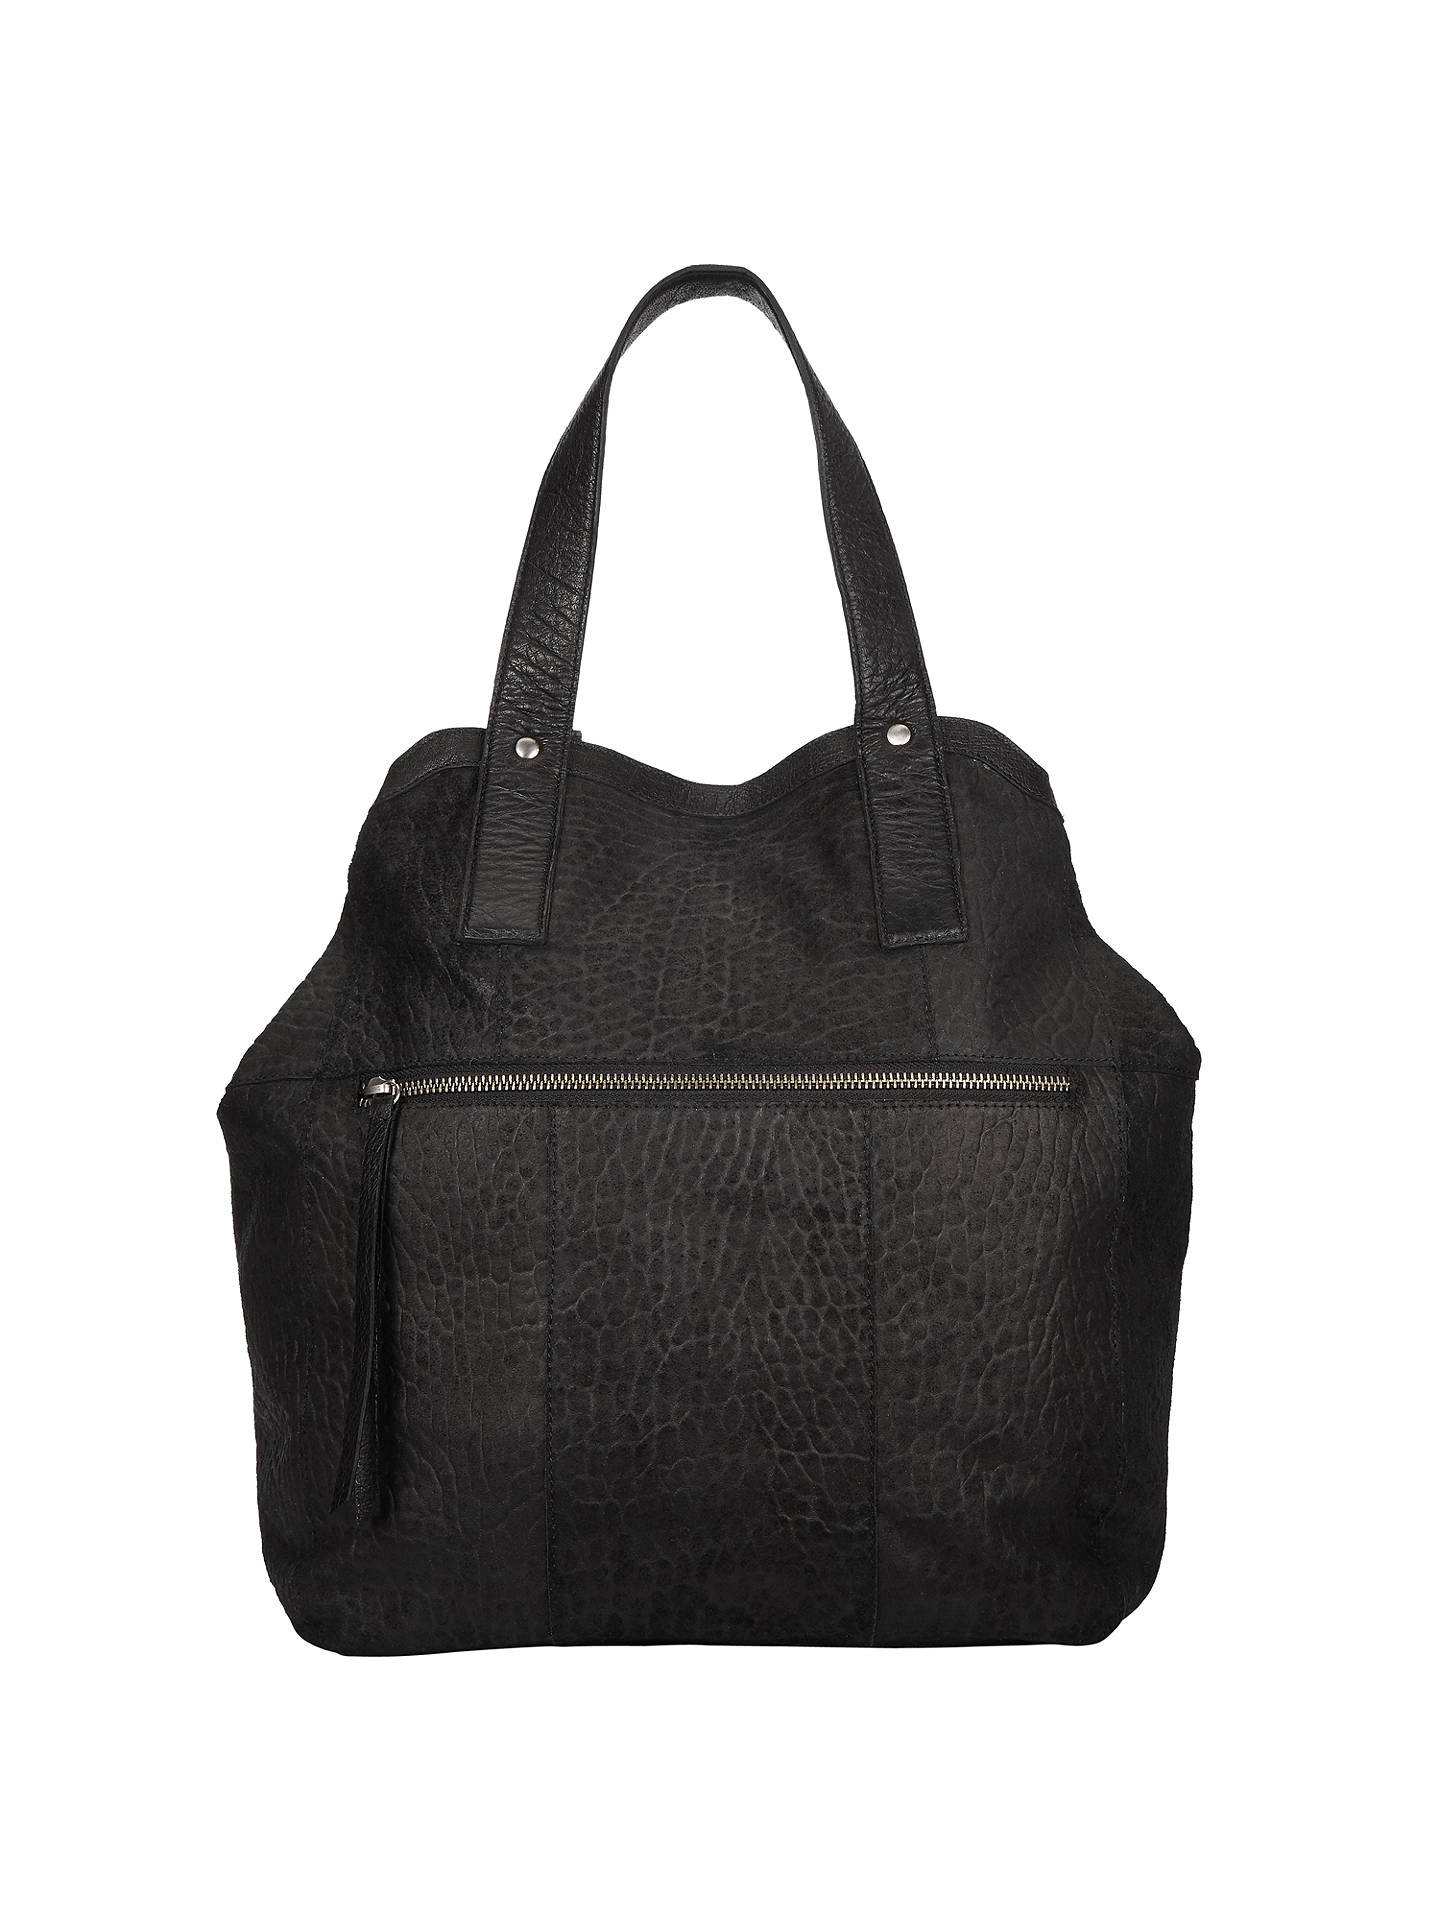 Pieces Paula Suede Tote Bag Black Online At Johnlewis